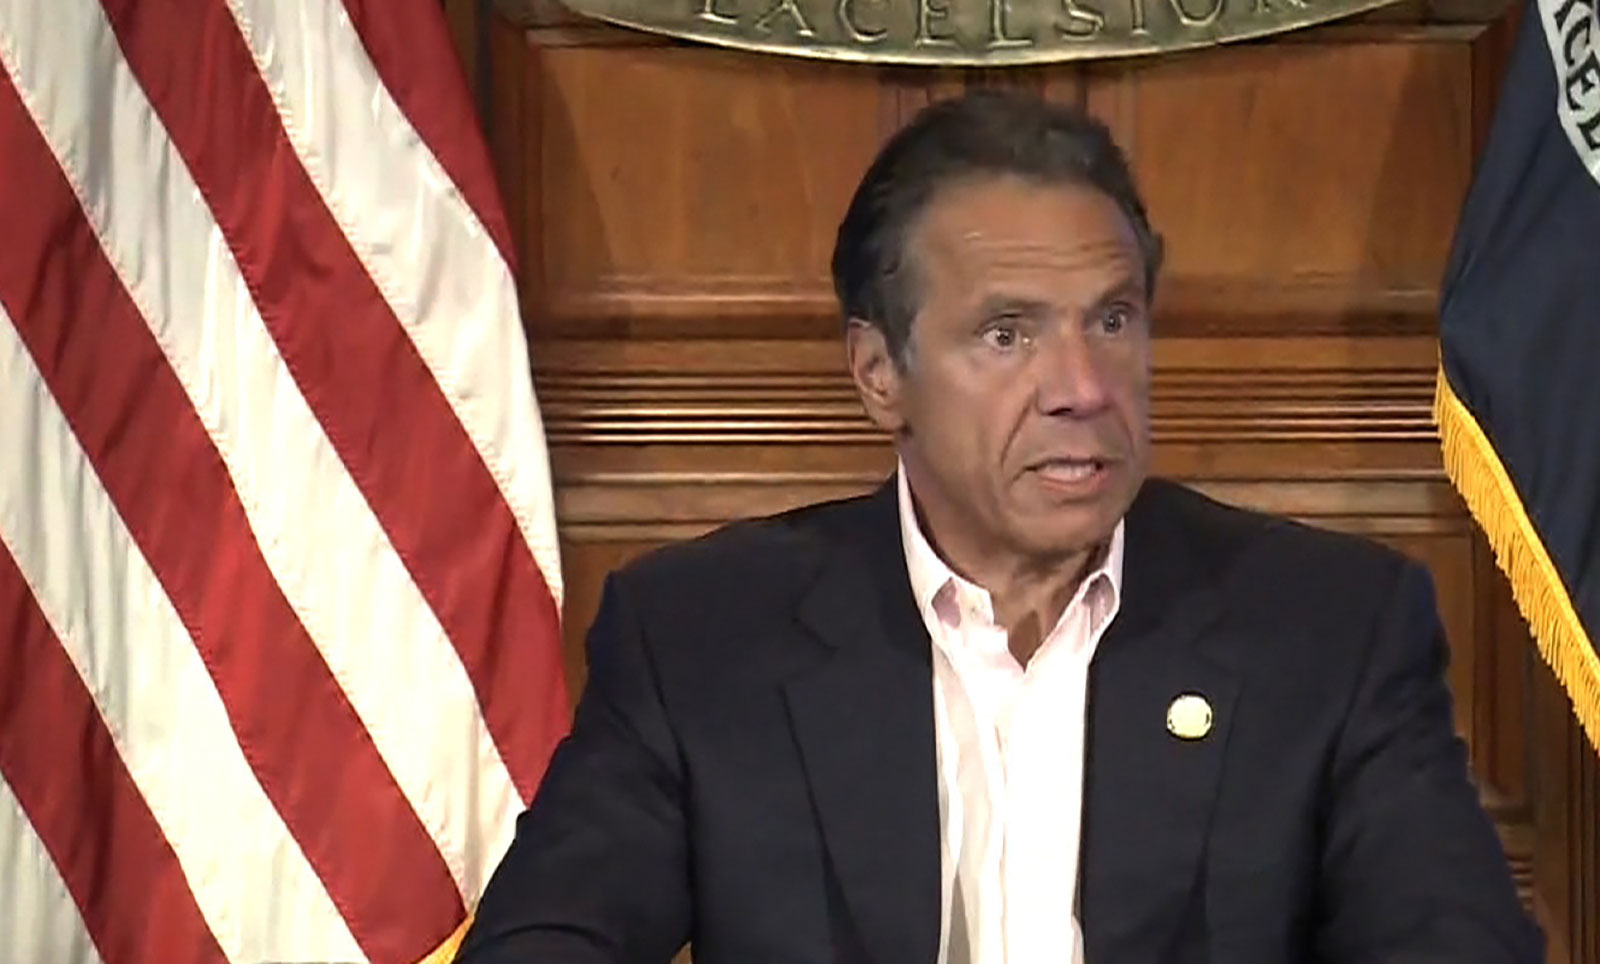 New York Gov. Andrew Cuomo speaks during a news conference on June 14.